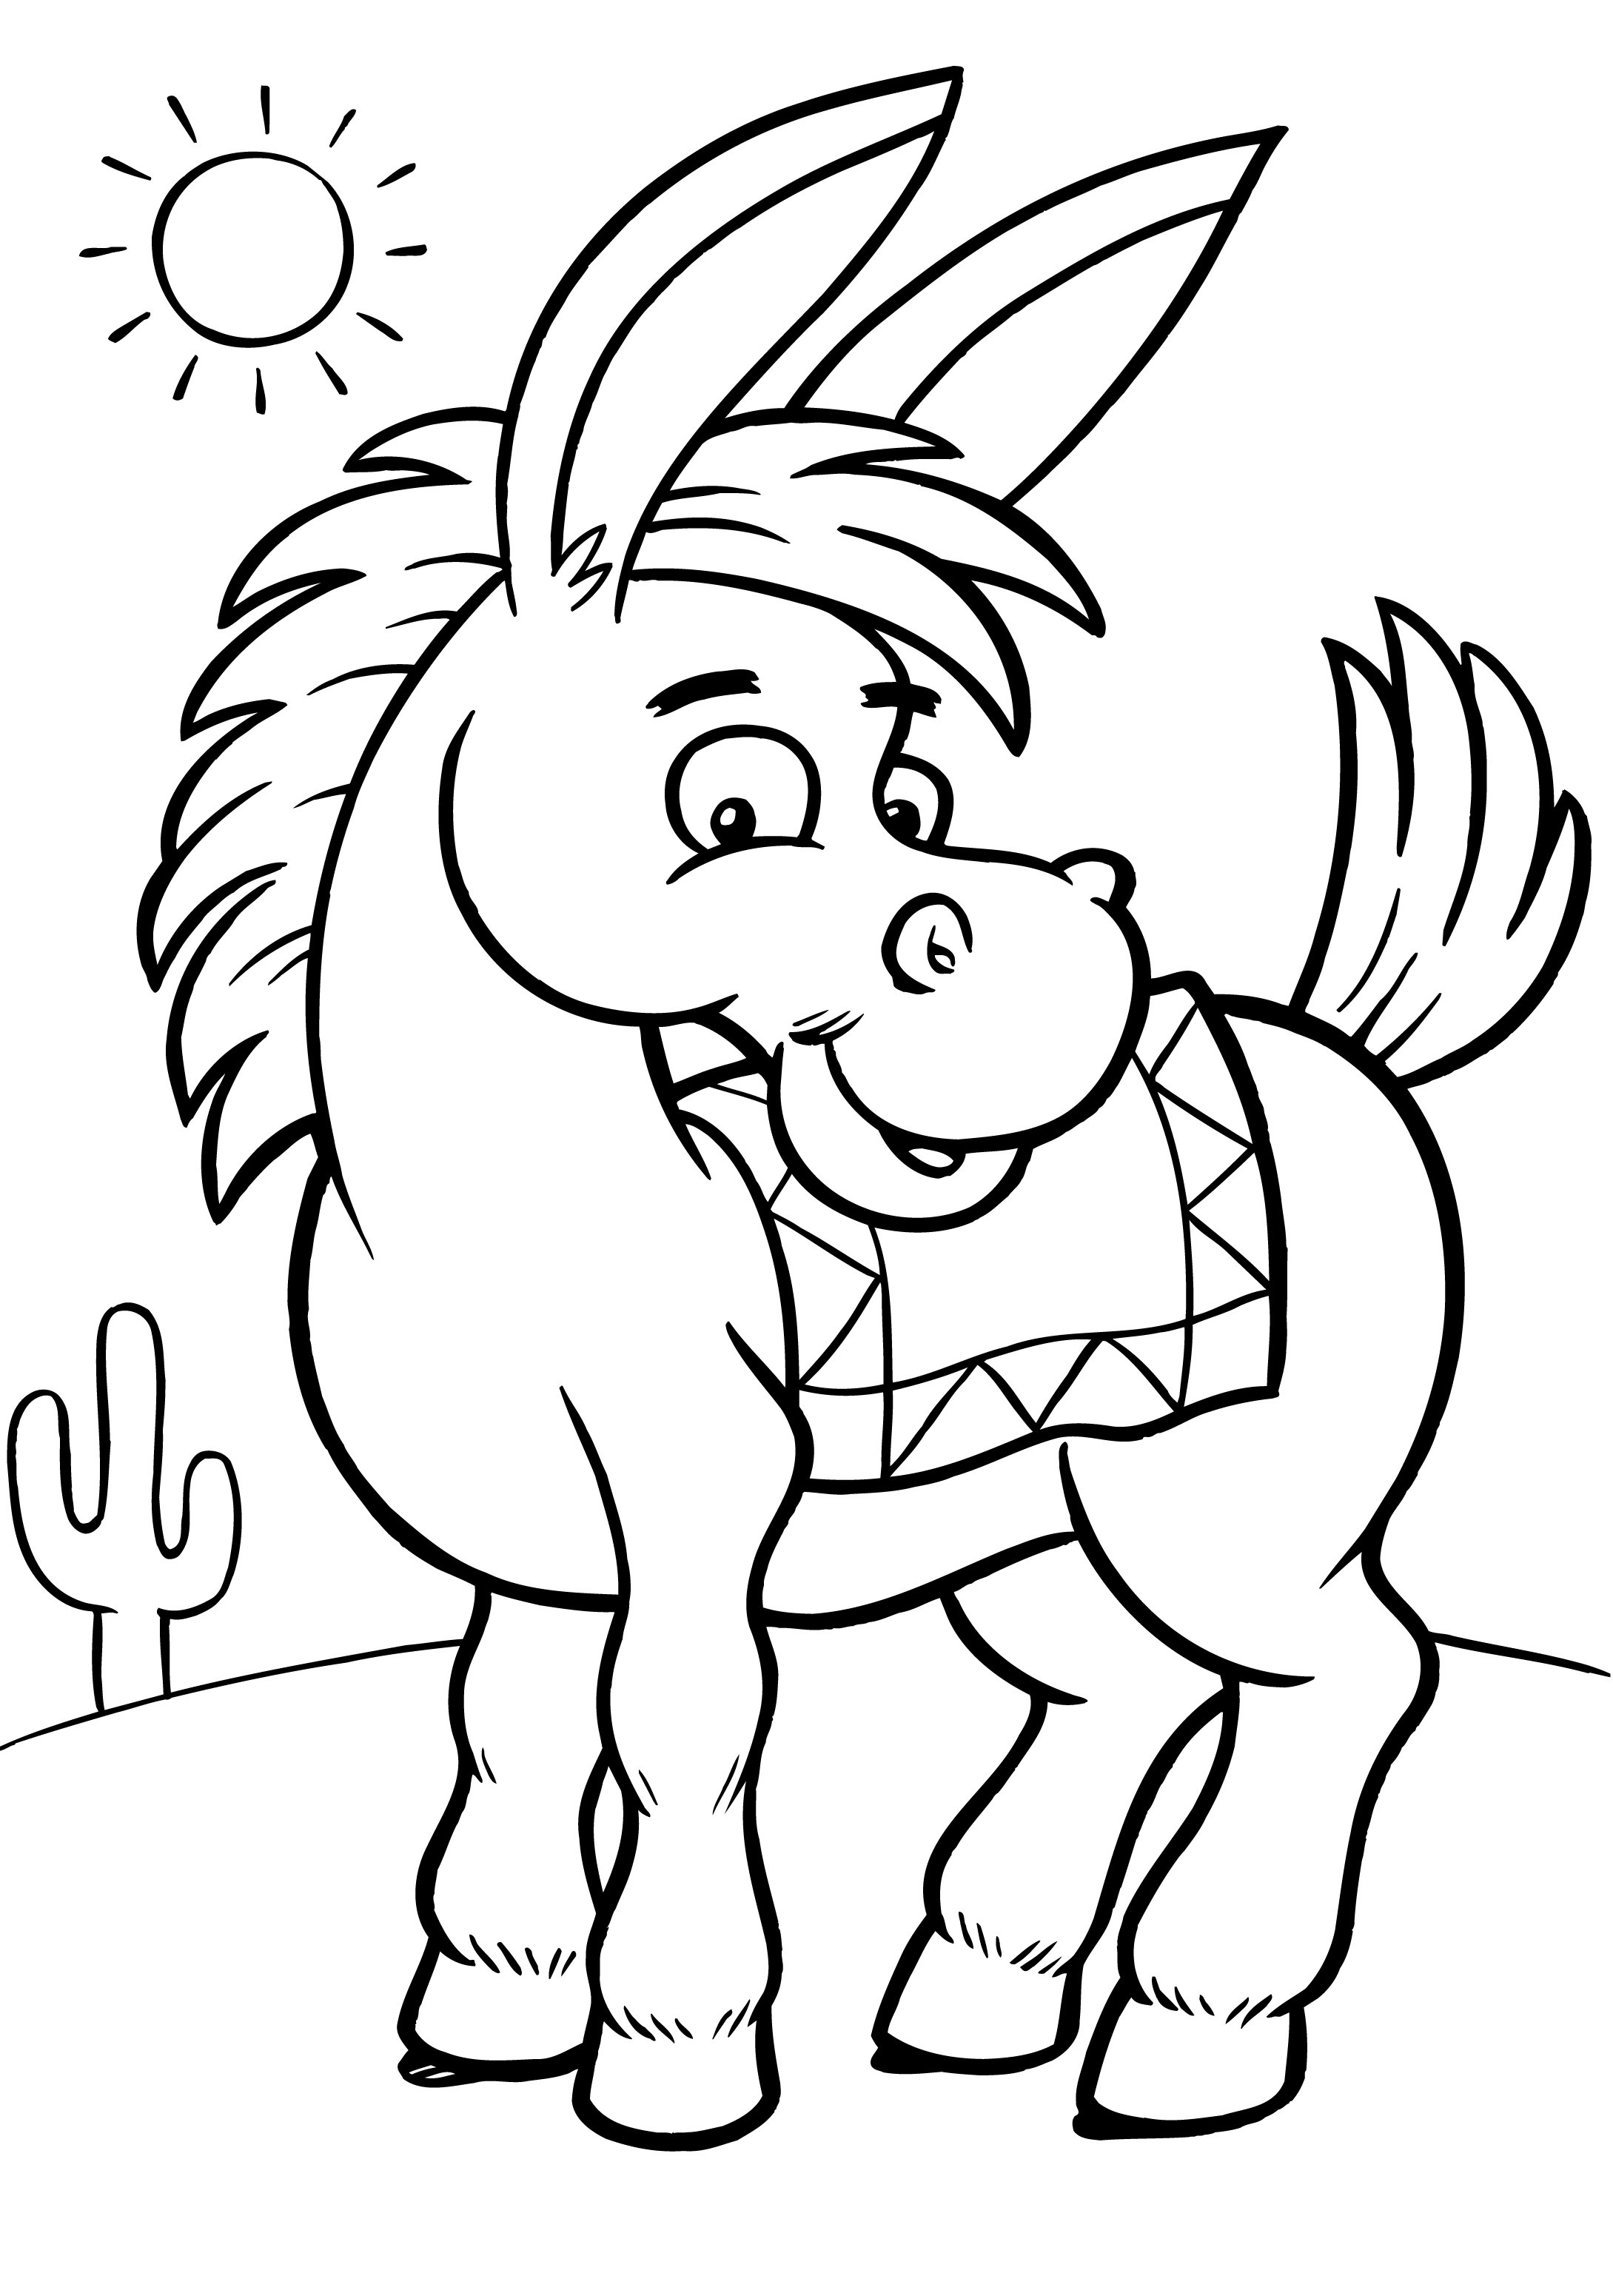 donkey colouring pages free printable donkey coloring pages for kids pages colouring donkey